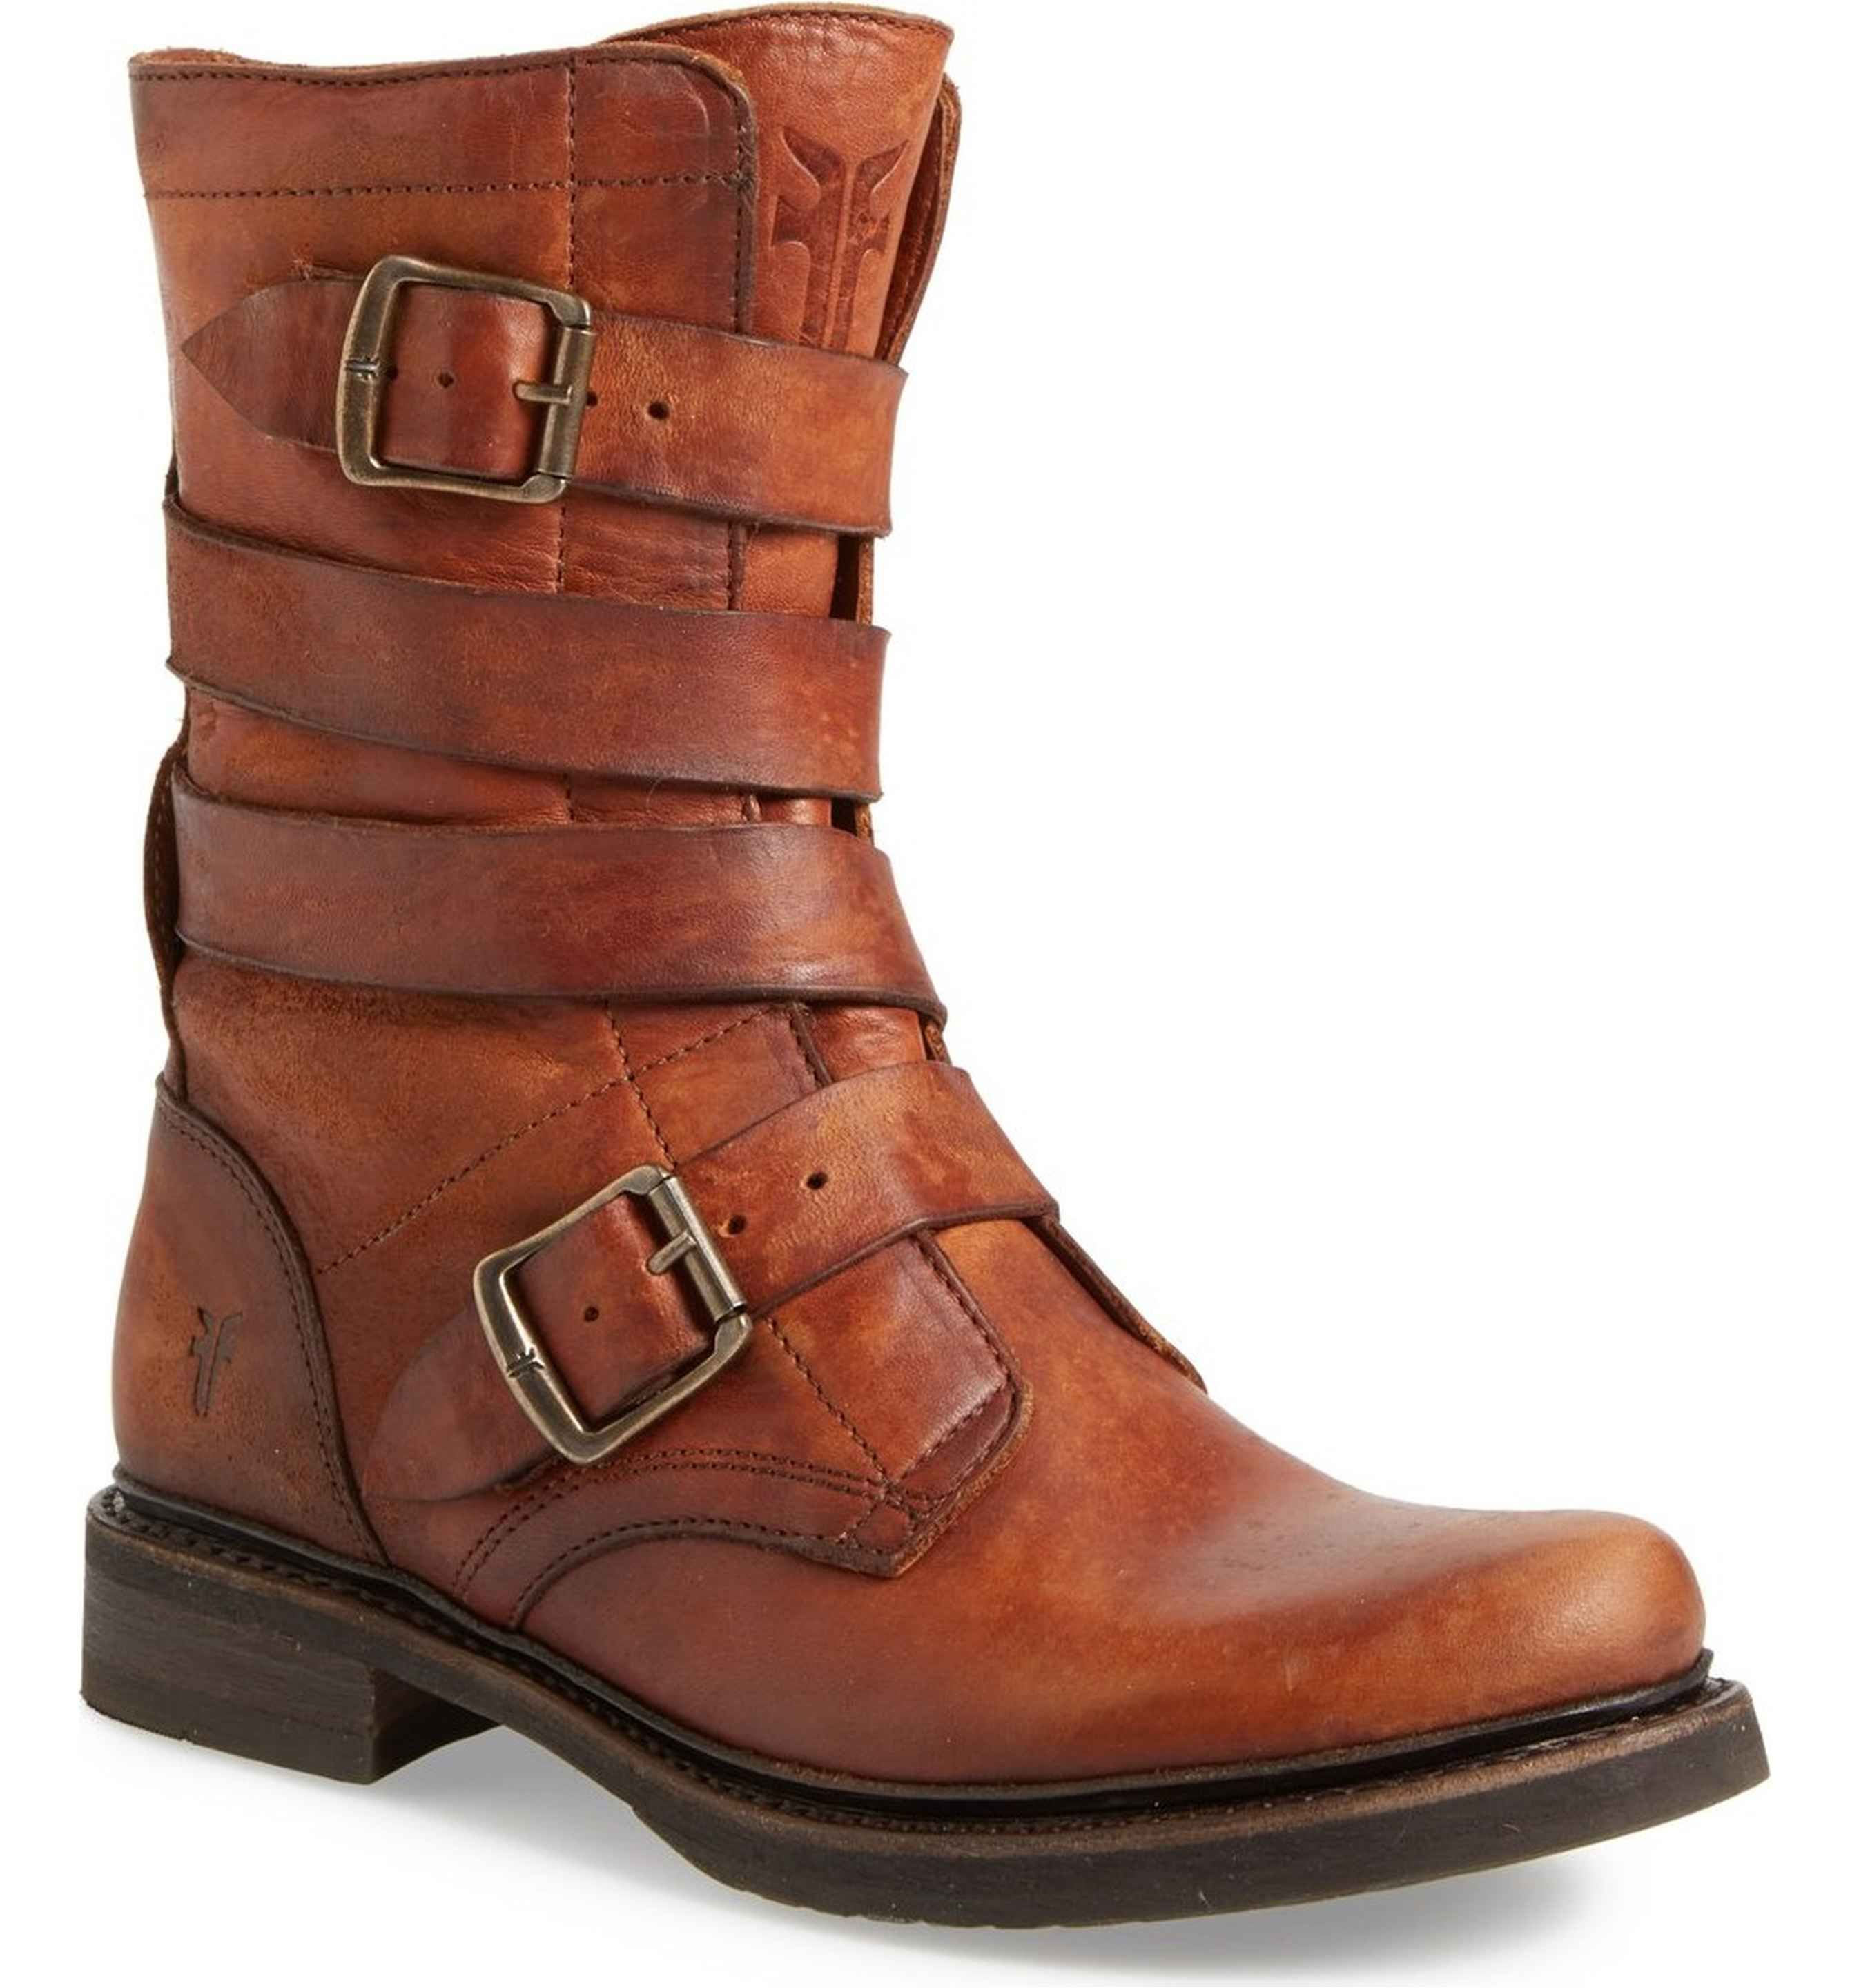 frye shoes men should own in 2017 what is popular vote